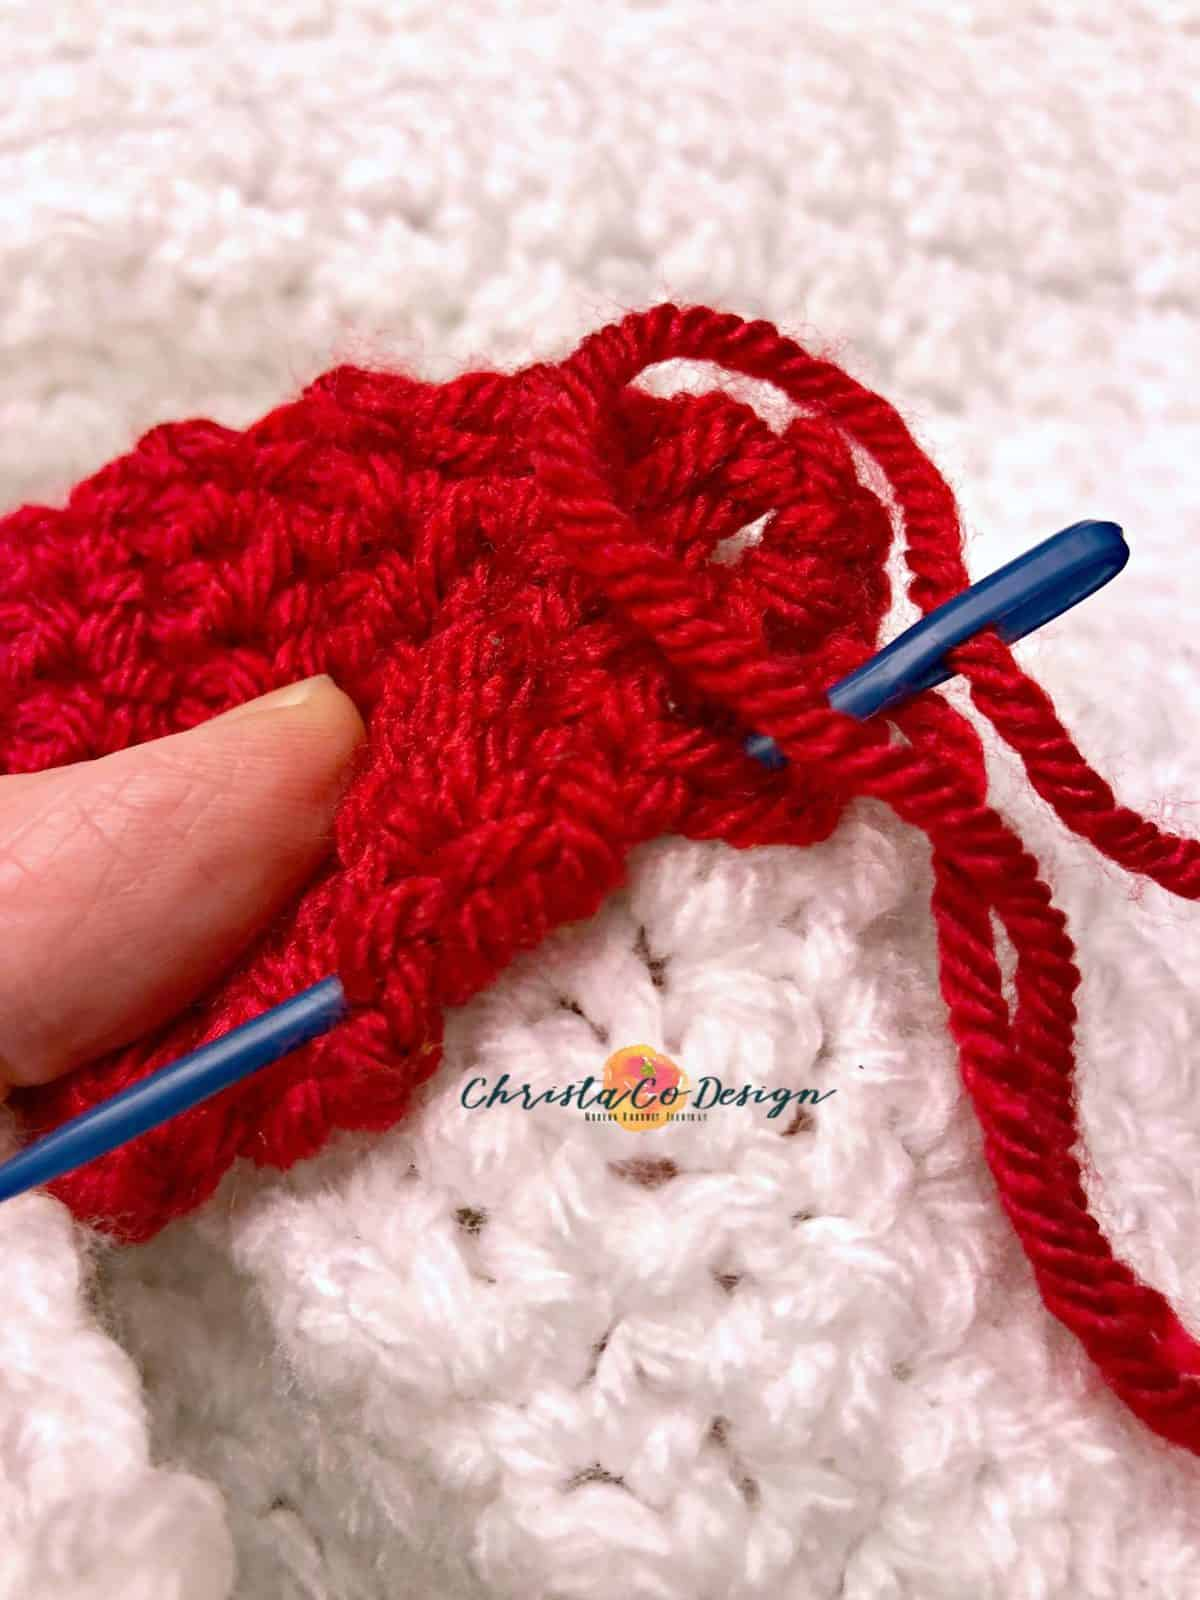 picture of blue yarn needle sewing through red crochet christmas light on to white blanket